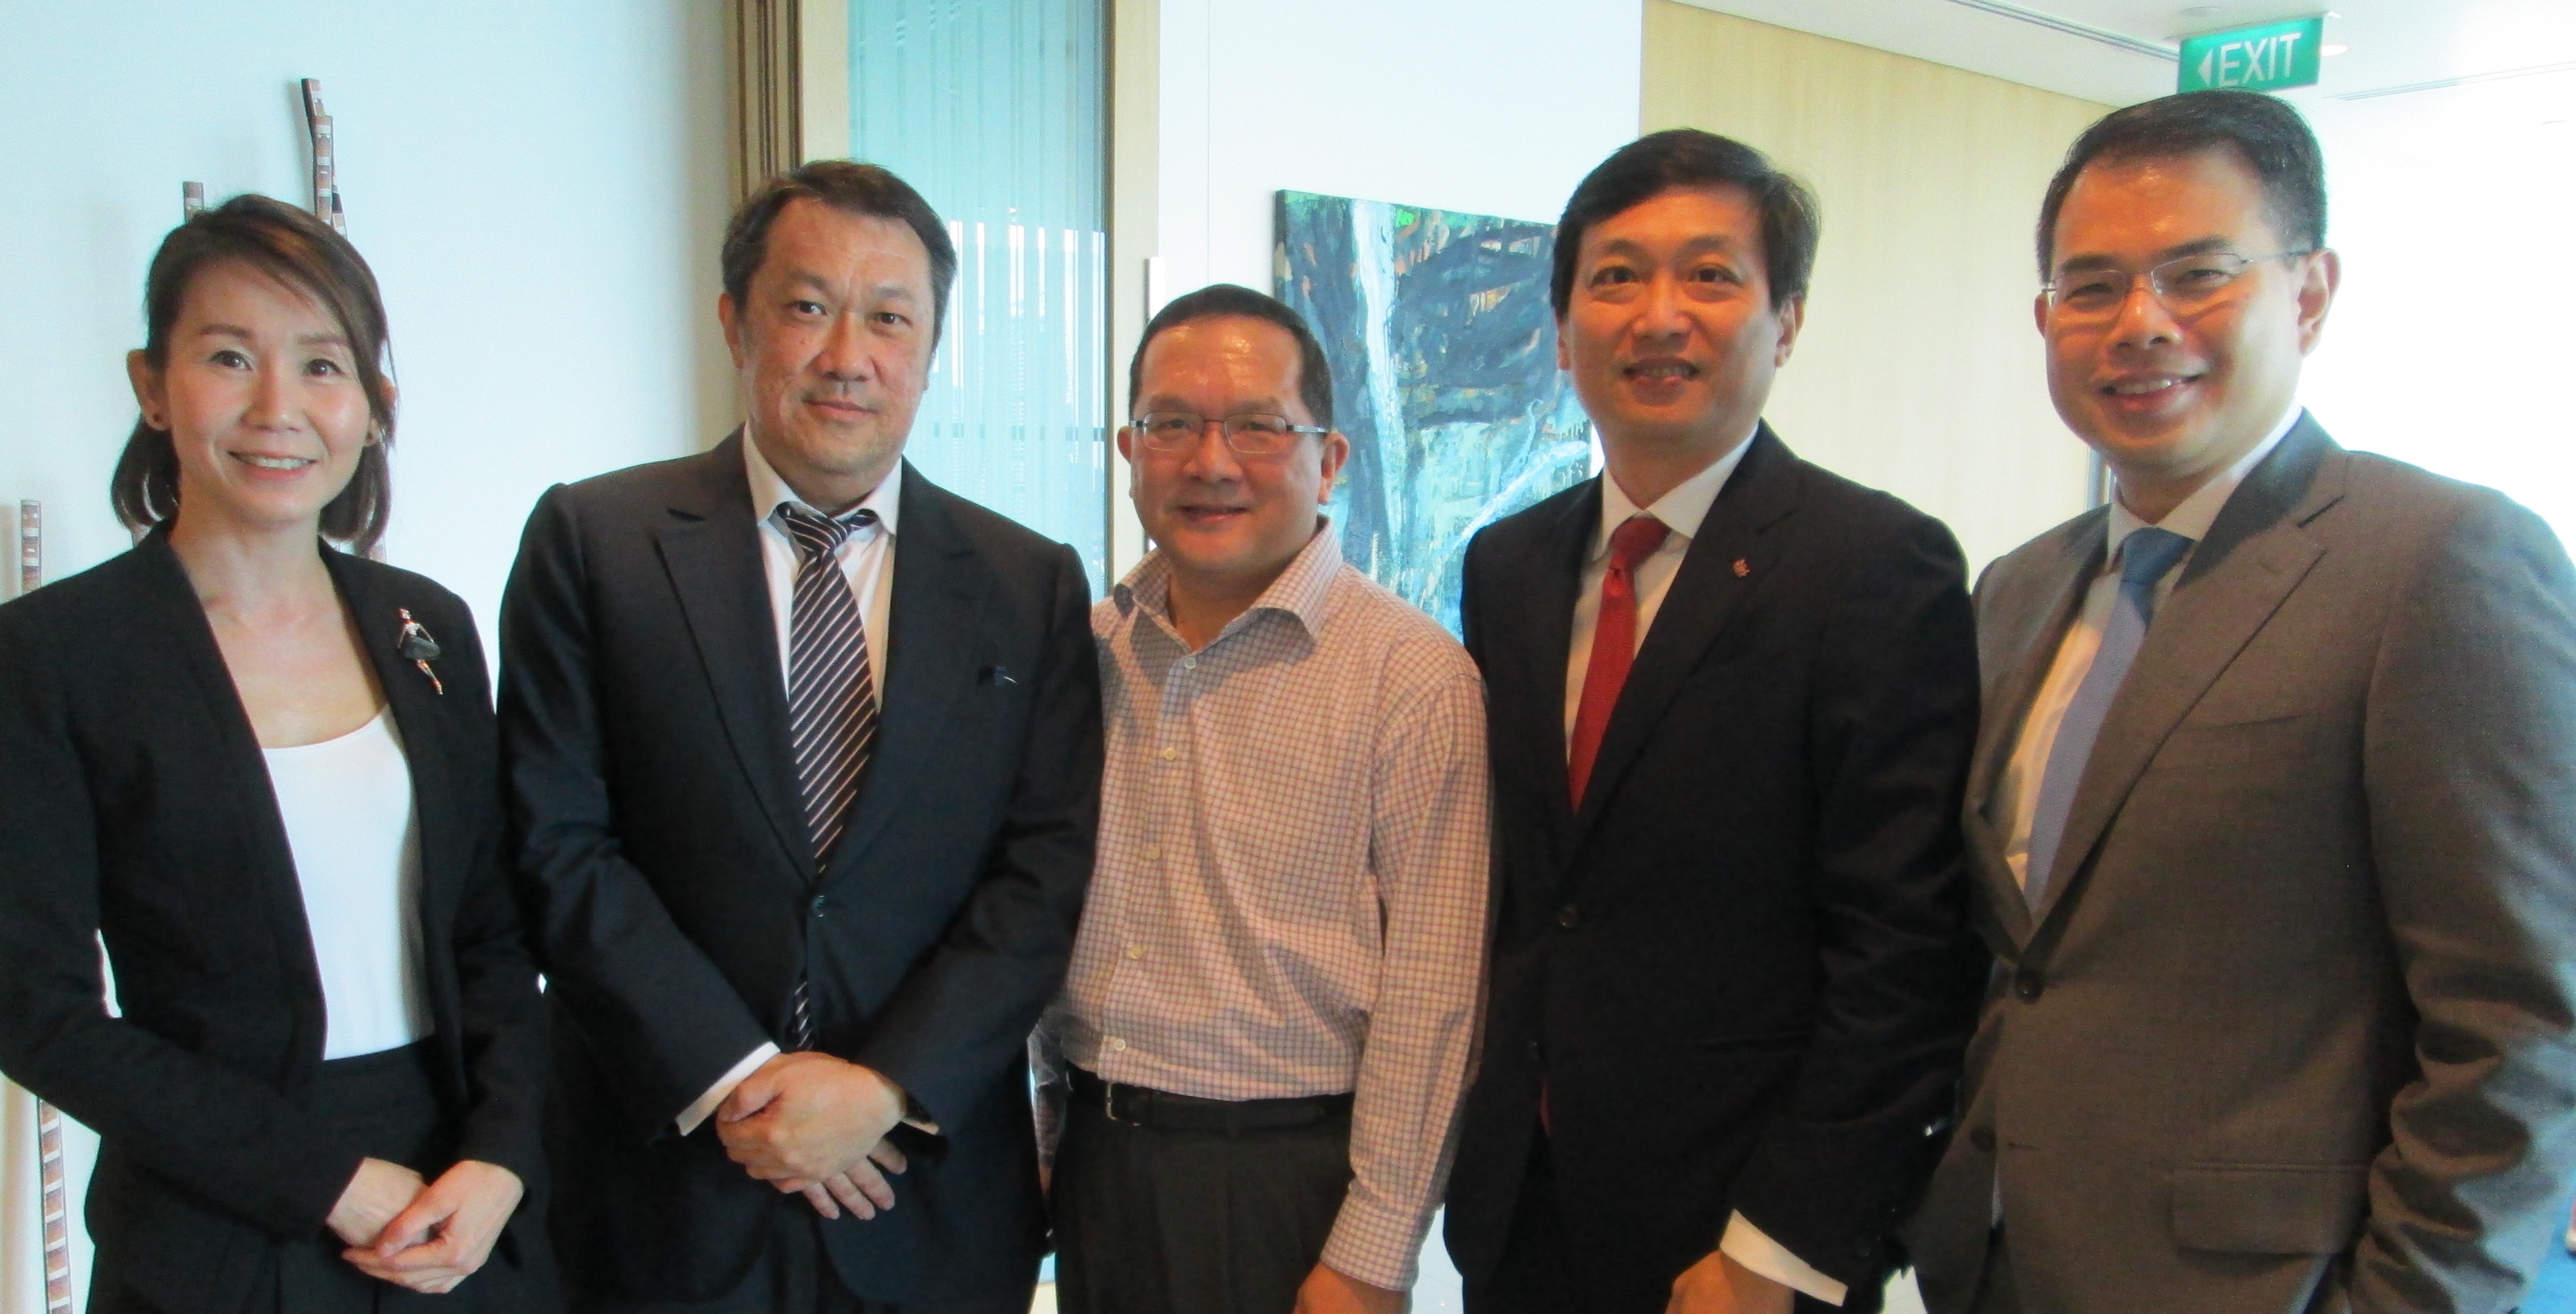 (From L-R) Ng Hsueh Ling (Keppel REIT), Ho Sing (Starhill Global REIT), Soong Tuck Yin (Macquarie Securities), Ronald Tay (Ascott REIT), and Koh Wee Lih (AIMS AMP Capital Industrial REIT).